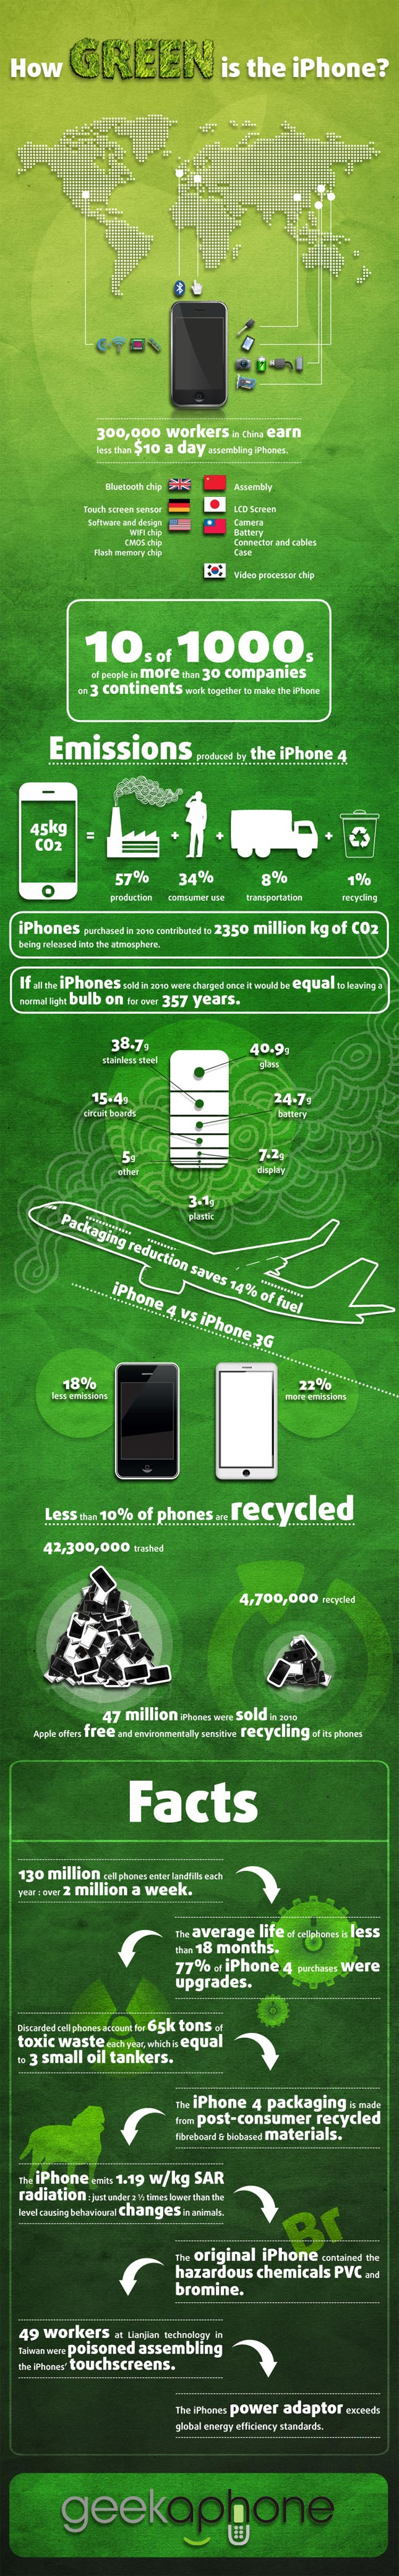 Iphone is green infographic